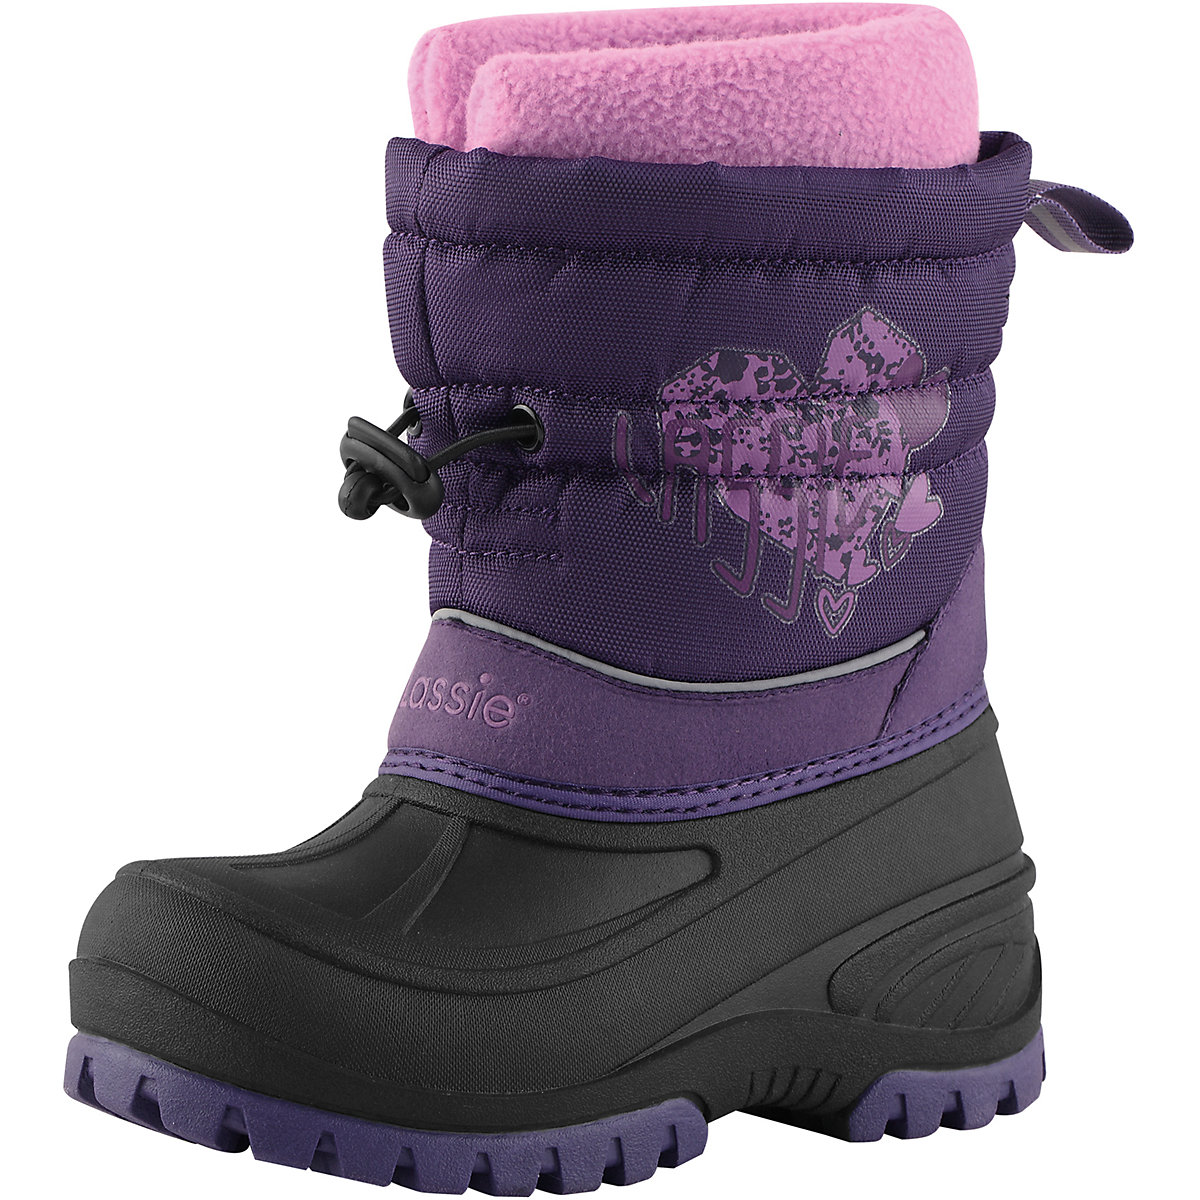 Boots LASSIE for girls 8623025 Valenki Uggi Winter shoes Children Kids boots lassie for girls 8622674 valenki uggi winter baby shoes kids